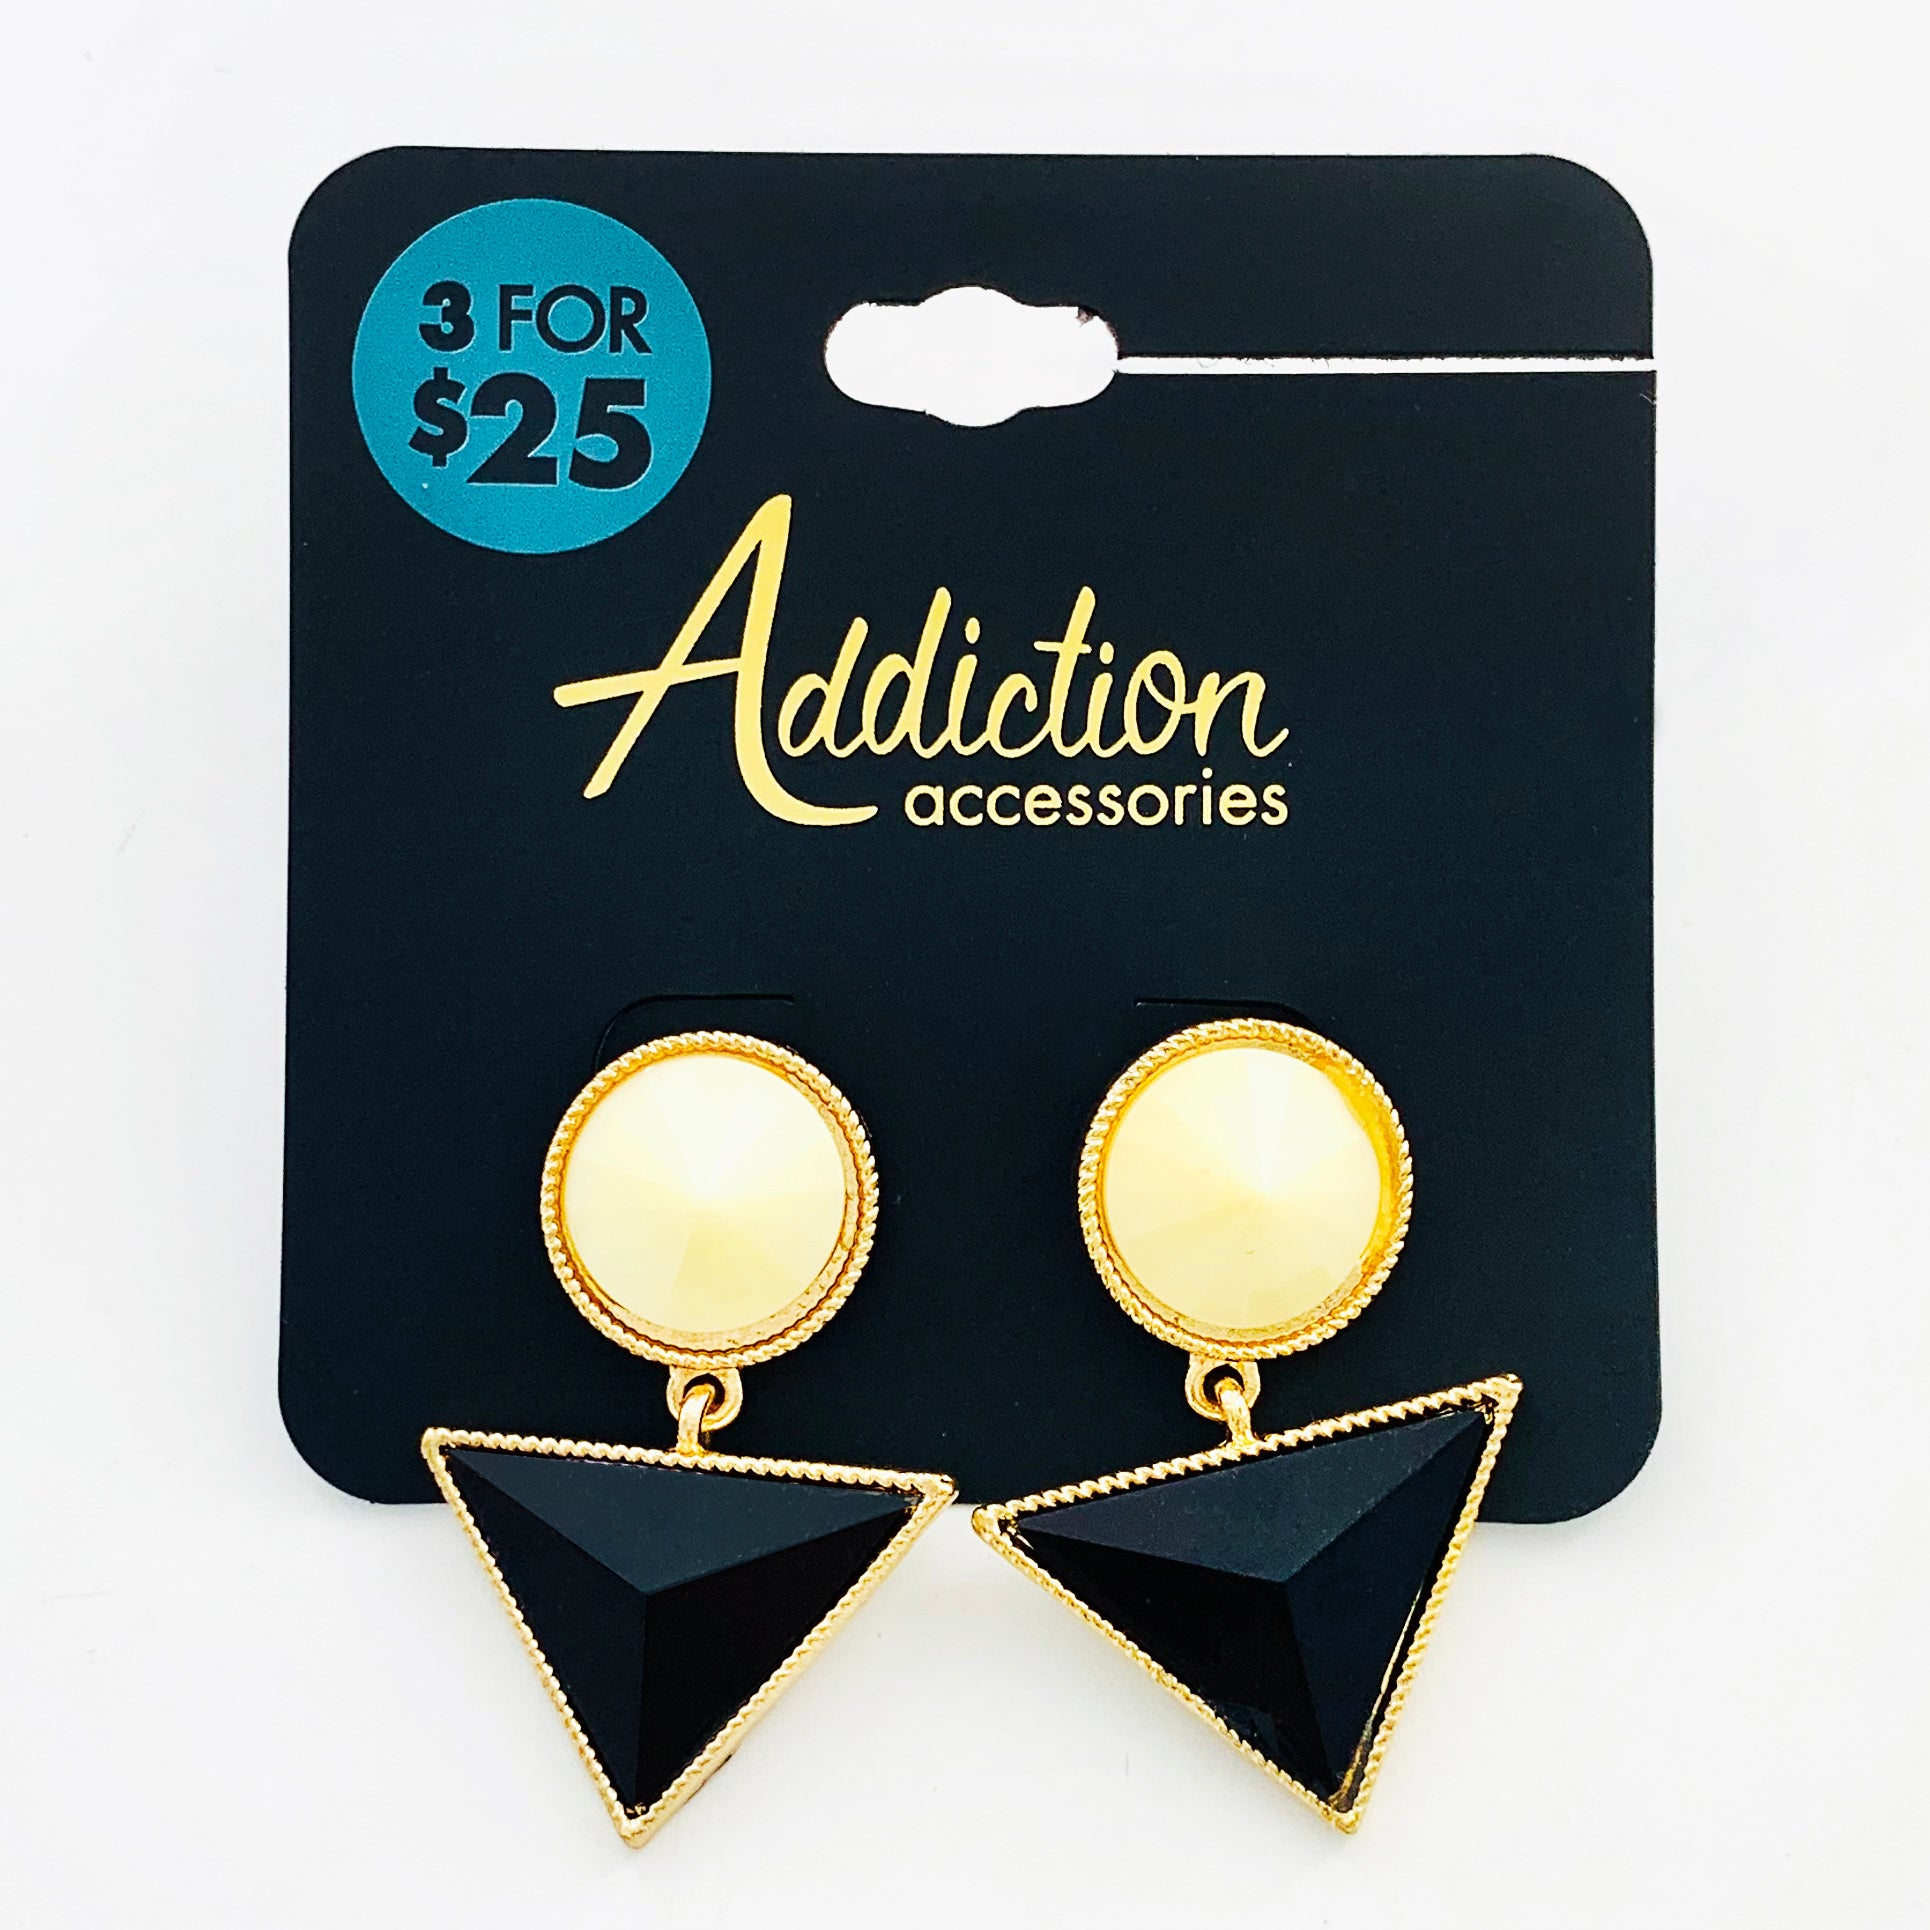 Earrings with white stones and black facet triangles